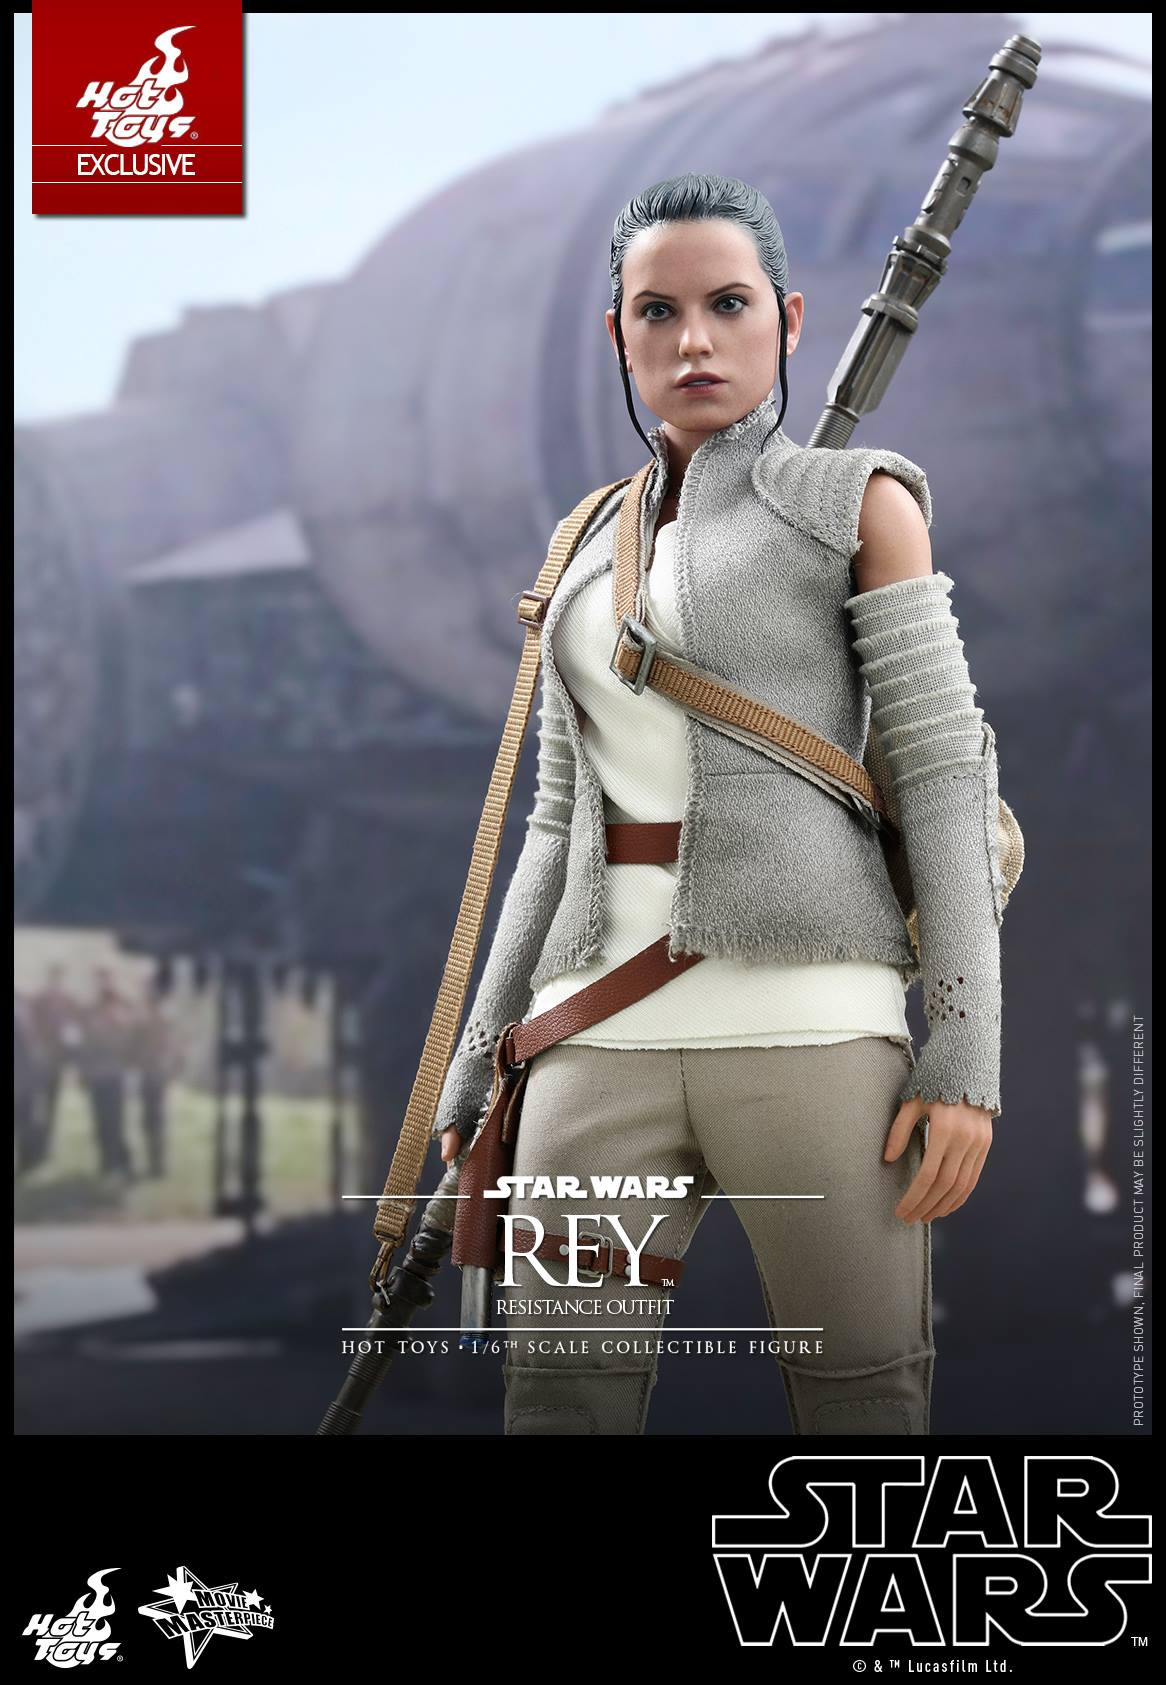 Hot Toys Star Wars: The Force Awakens Resistance Outfit Rey